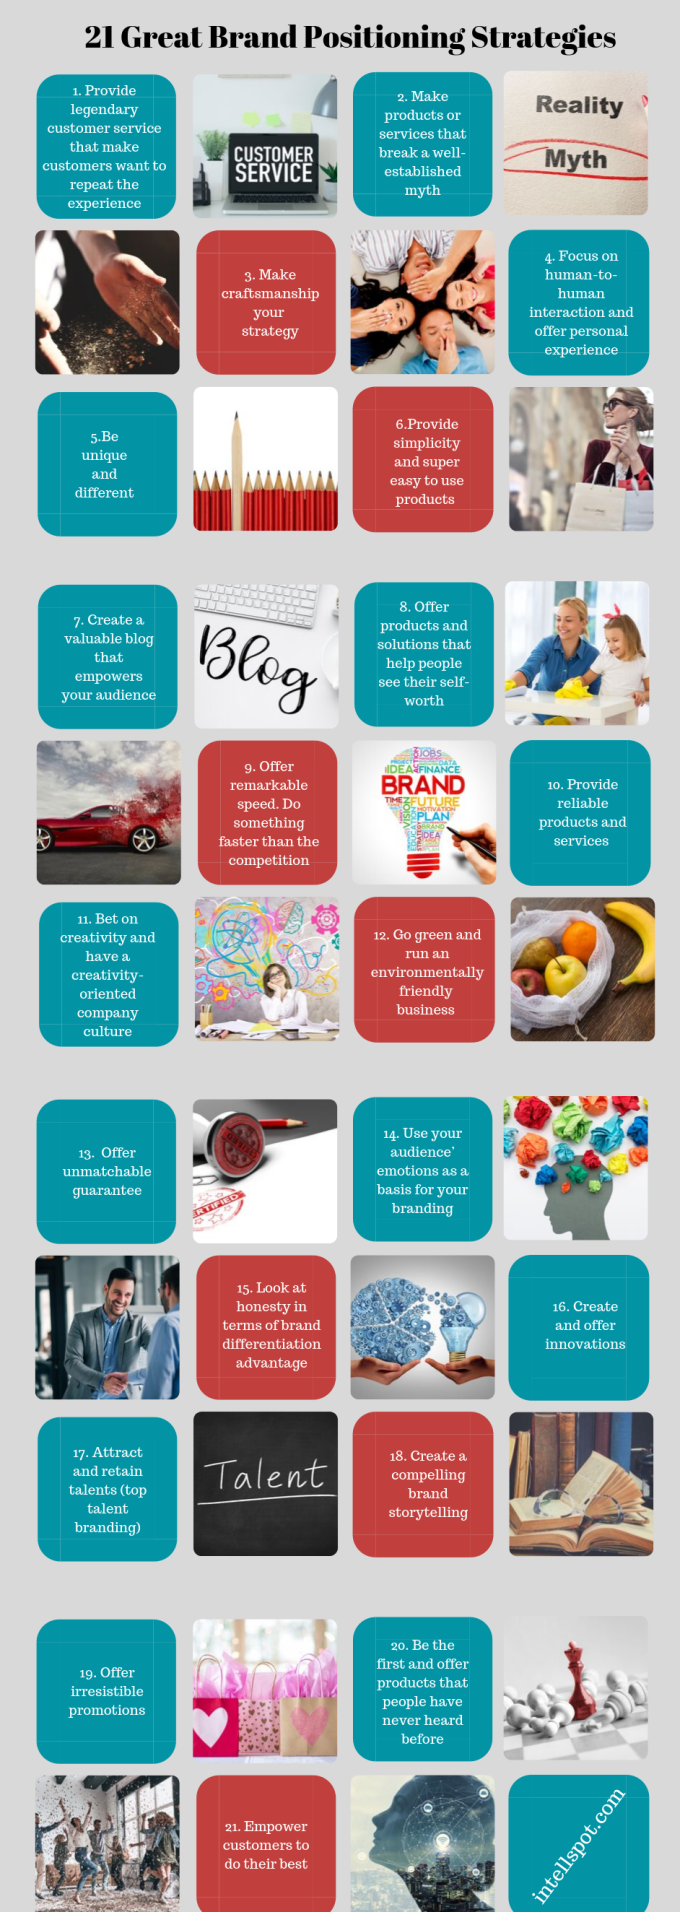 brand positioning strategies - infographic